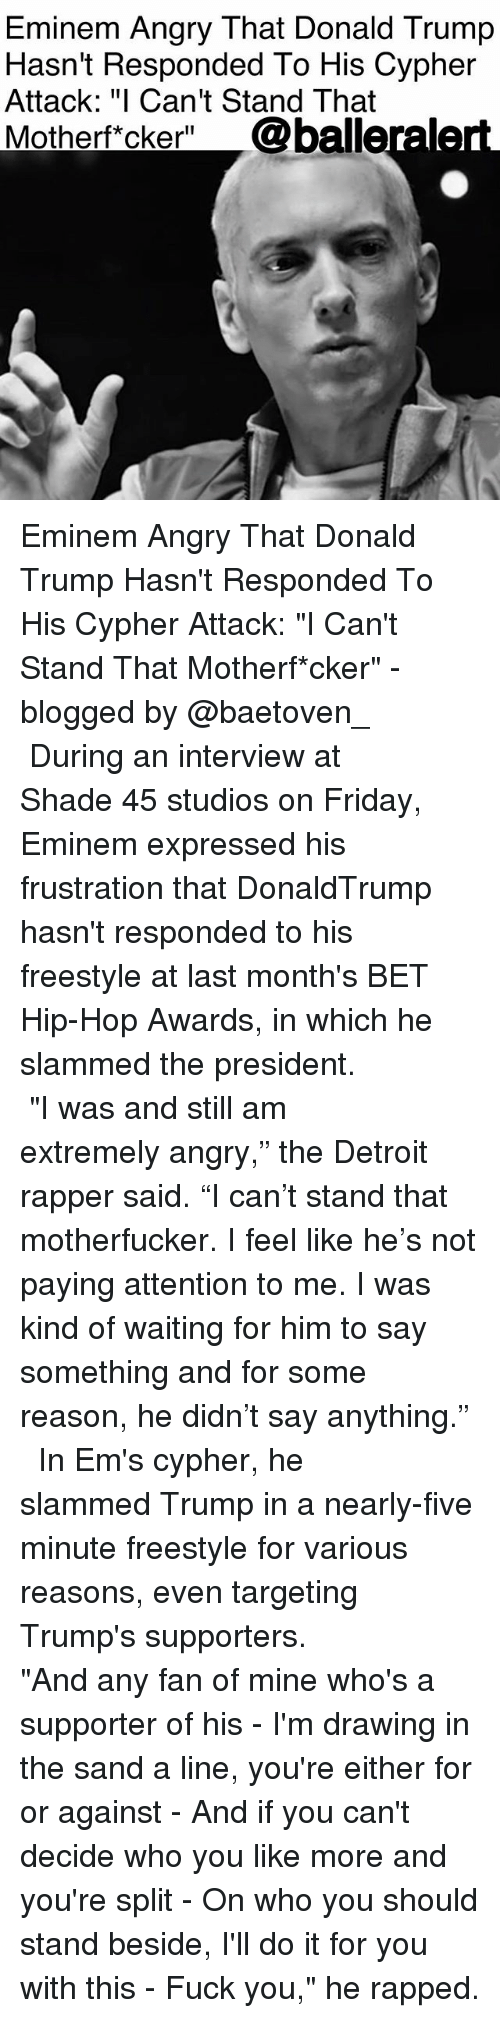 "rapped: Eminem Angry That Donald Trump  Hasn't Responded To His Cypher  Attack: ""I Can't Stand That  Motherft cker"" @balleraler Eminem Angry That Donald Trump Hasn't Responded To His Cypher Attack: ""I Can't Stand That Motherf*cker"" - blogged by @baetoven_ ⠀⠀⠀⠀⠀⠀⠀ ⠀⠀⠀⠀⠀⠀⠀ During an interview at Shade 45 studios on Friday, Eminem expressed his frustration that DonaldTrump hasn't responded to his freestyle at last month's BET Hip-Hop Awards, in which he slammed the president. ⠀⠀⠀⠀⠀⠀⠀ ⠀⠀⠀⠀⠀⠀⠀ ""I was and still am extremely angry,"" the Detroit rapper said. ""I can't stand that motherfucker. I feel like he's not paying attention to me. I was kind of waiting for him to say something and for some reason, he didn't say anything."" ⠀⠀⠀⠀⠀⠀⠀ ⠀⠀⠀⠀⠀⠀⠀ In Em's cypher, he slammed Trump in a nearly-five minute freestyle for various reasons, even targeting Trump's supporters. ⠀⠀⠀⠀⠀⠀⠀ ⠀⠀⠀⠀⠀⠀⠀ ""And any fan of mine who's a supporter of his - I'm drawing in the sand a line, you're either for or against - And if you can't decide who you like more and you're split - On who you should stand beside, I'll do it for you with this - Fuck you,"" he rapped."